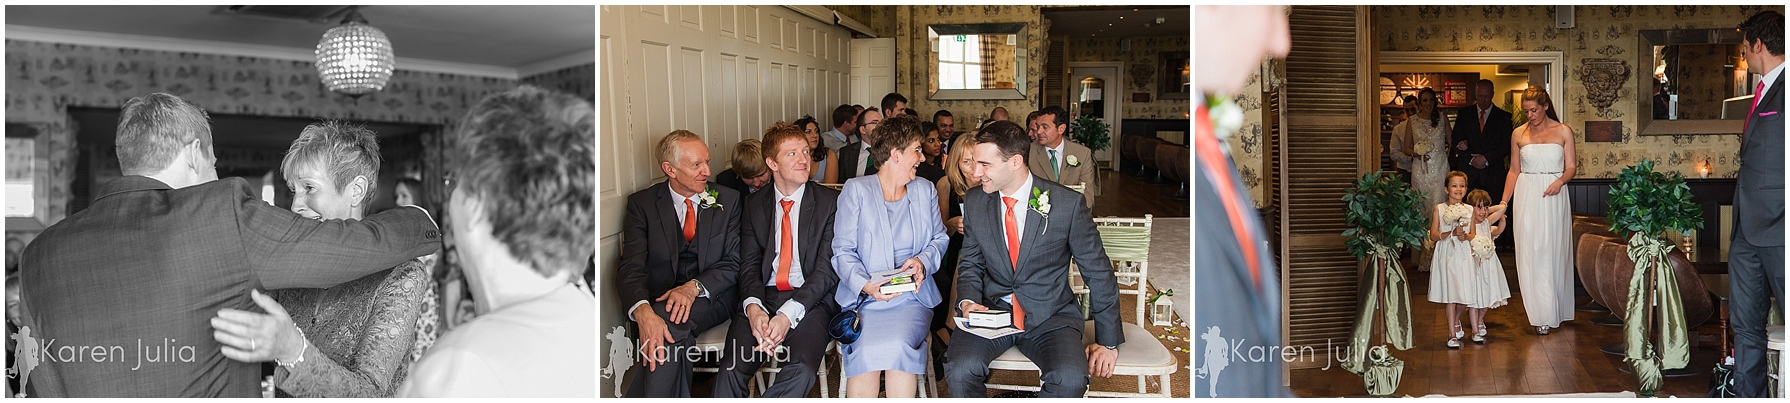 Shireburn-Arms-Wedding-Photography-14